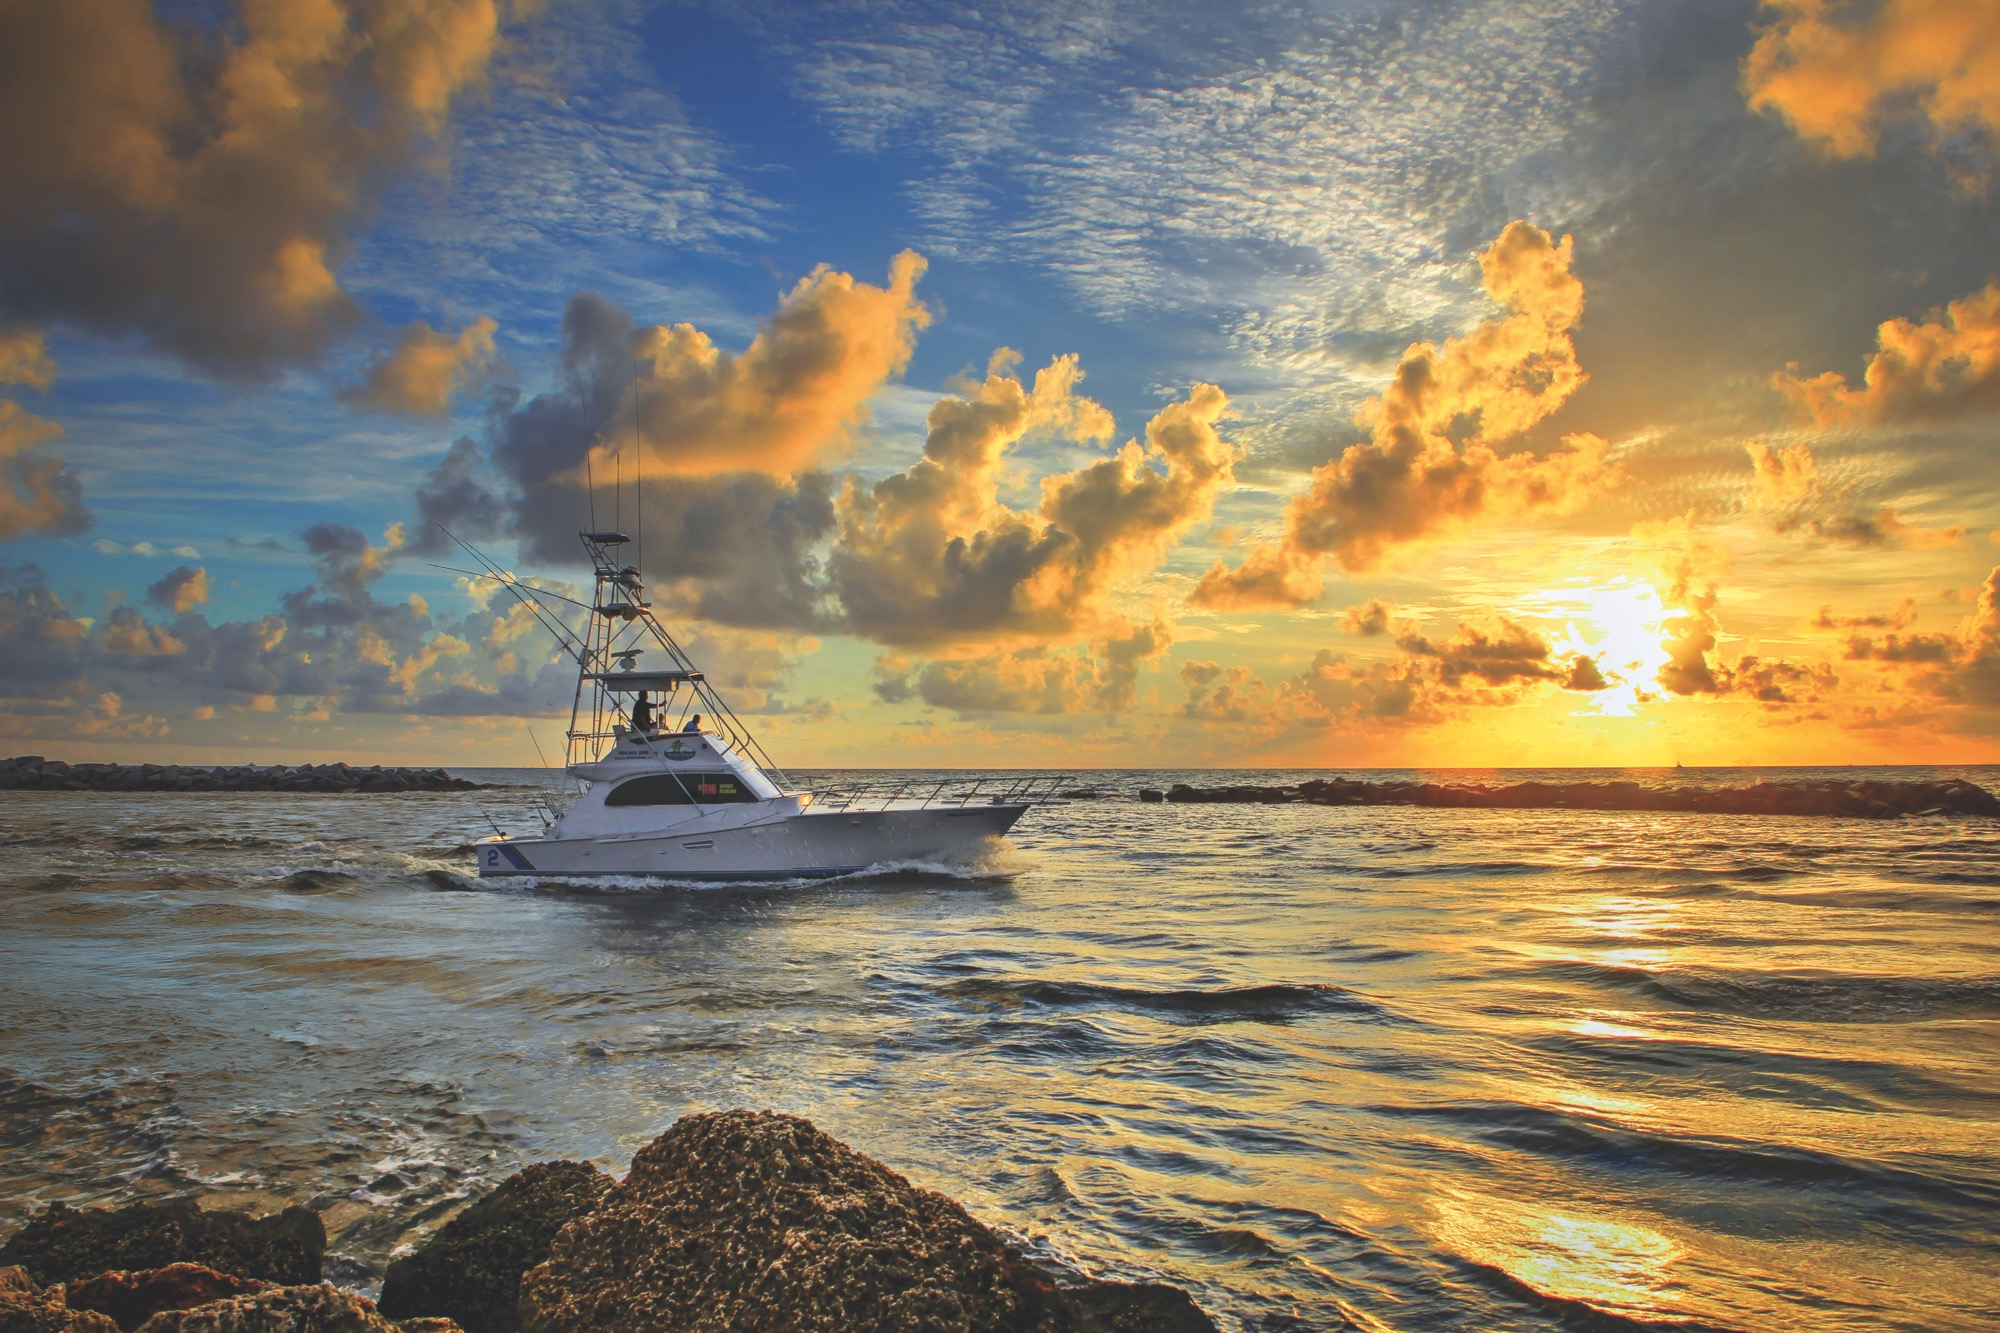 A252-Boat-Going-Fishing-During-Sunrise-at-the-Pompano-Inlet-Florida-Original.jpg